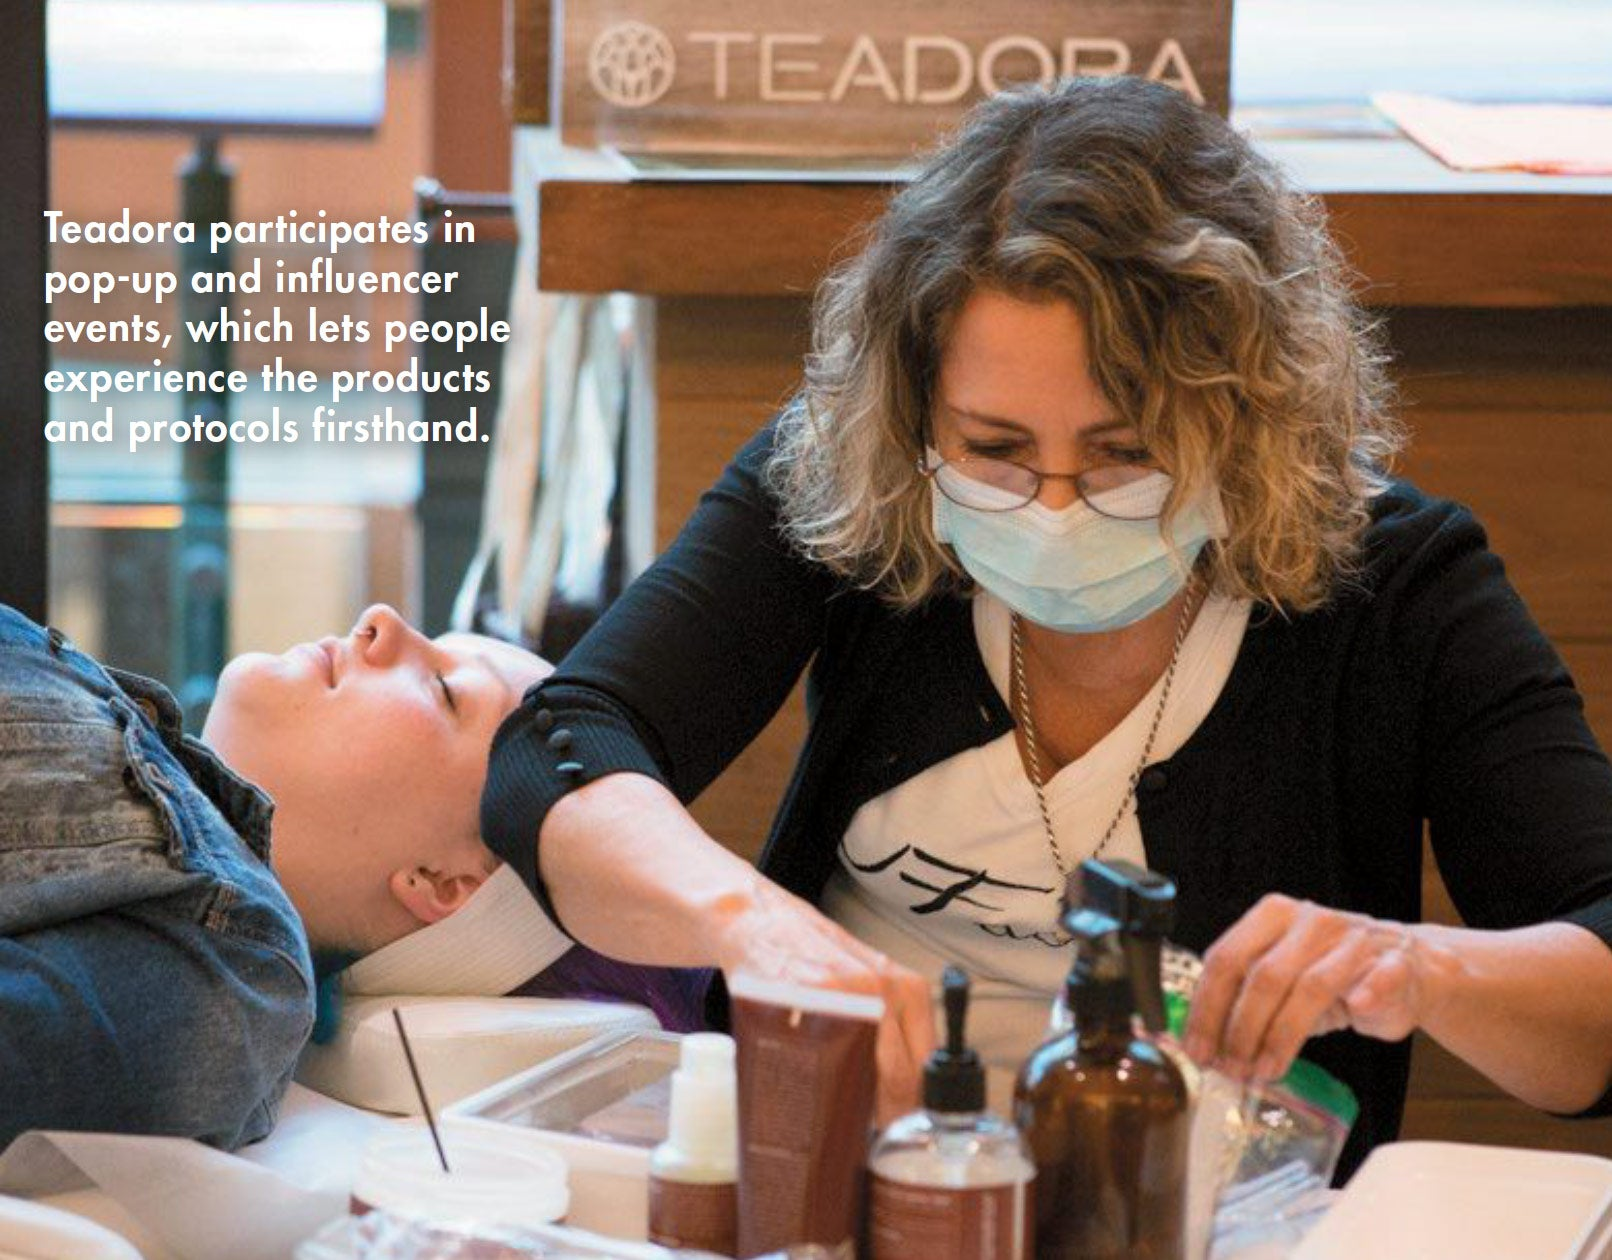 American Spa - Indie Beauty - Teadora Event